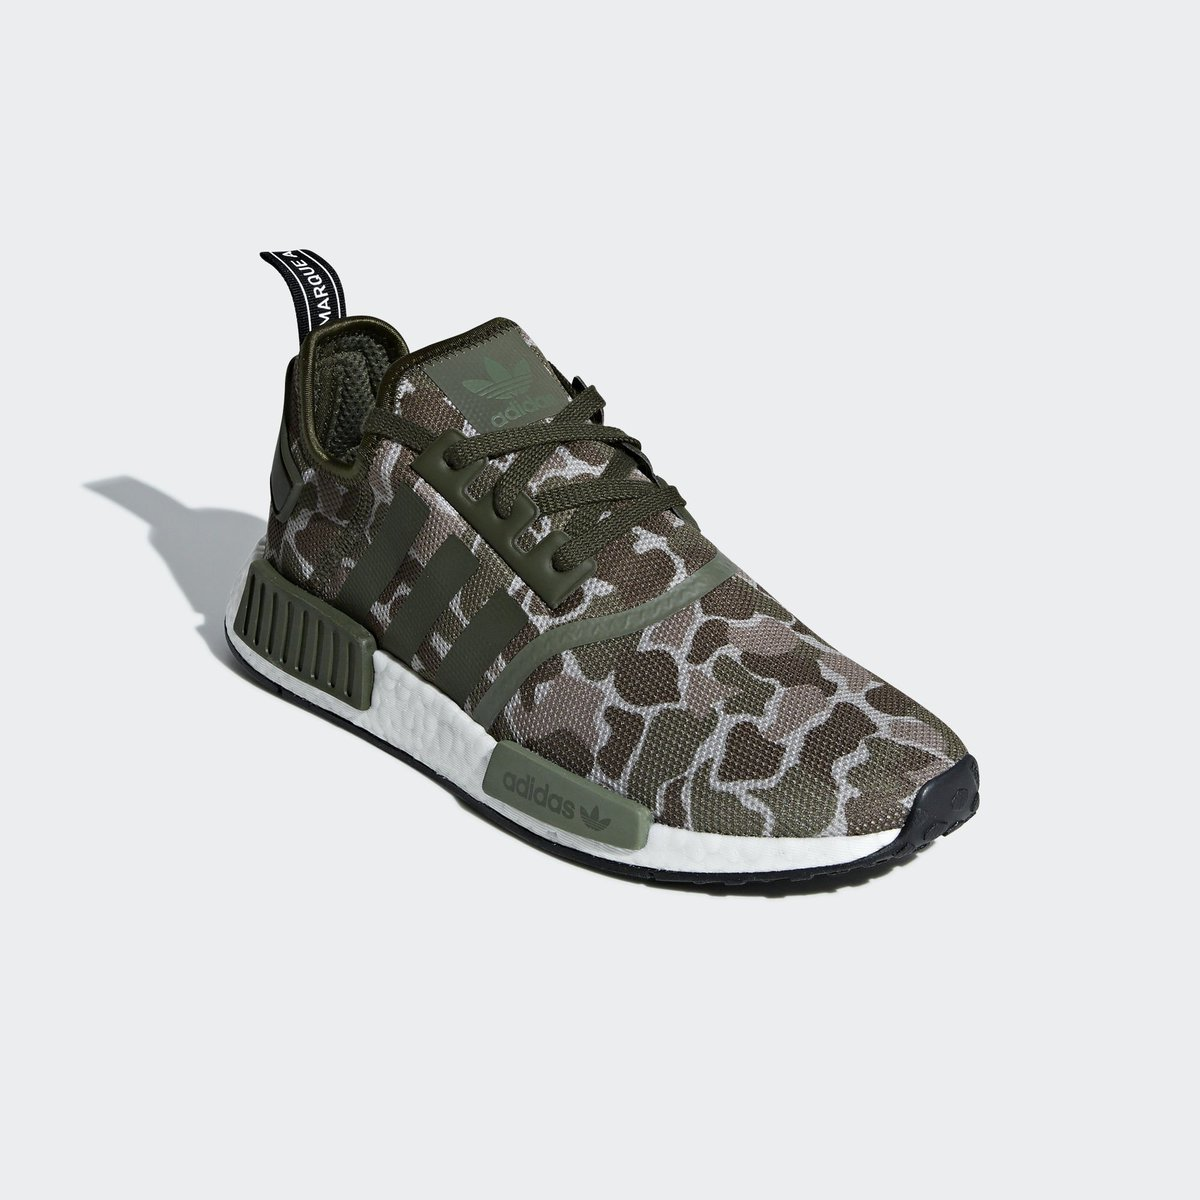 best loved 6a453 a4482 Now available for preorder. adidas NMDR1 Camo. Preorder ships Thursday,  August 2. — httpsbit.ly2NIcEB4 pic.twitter.comchr6XajHgy